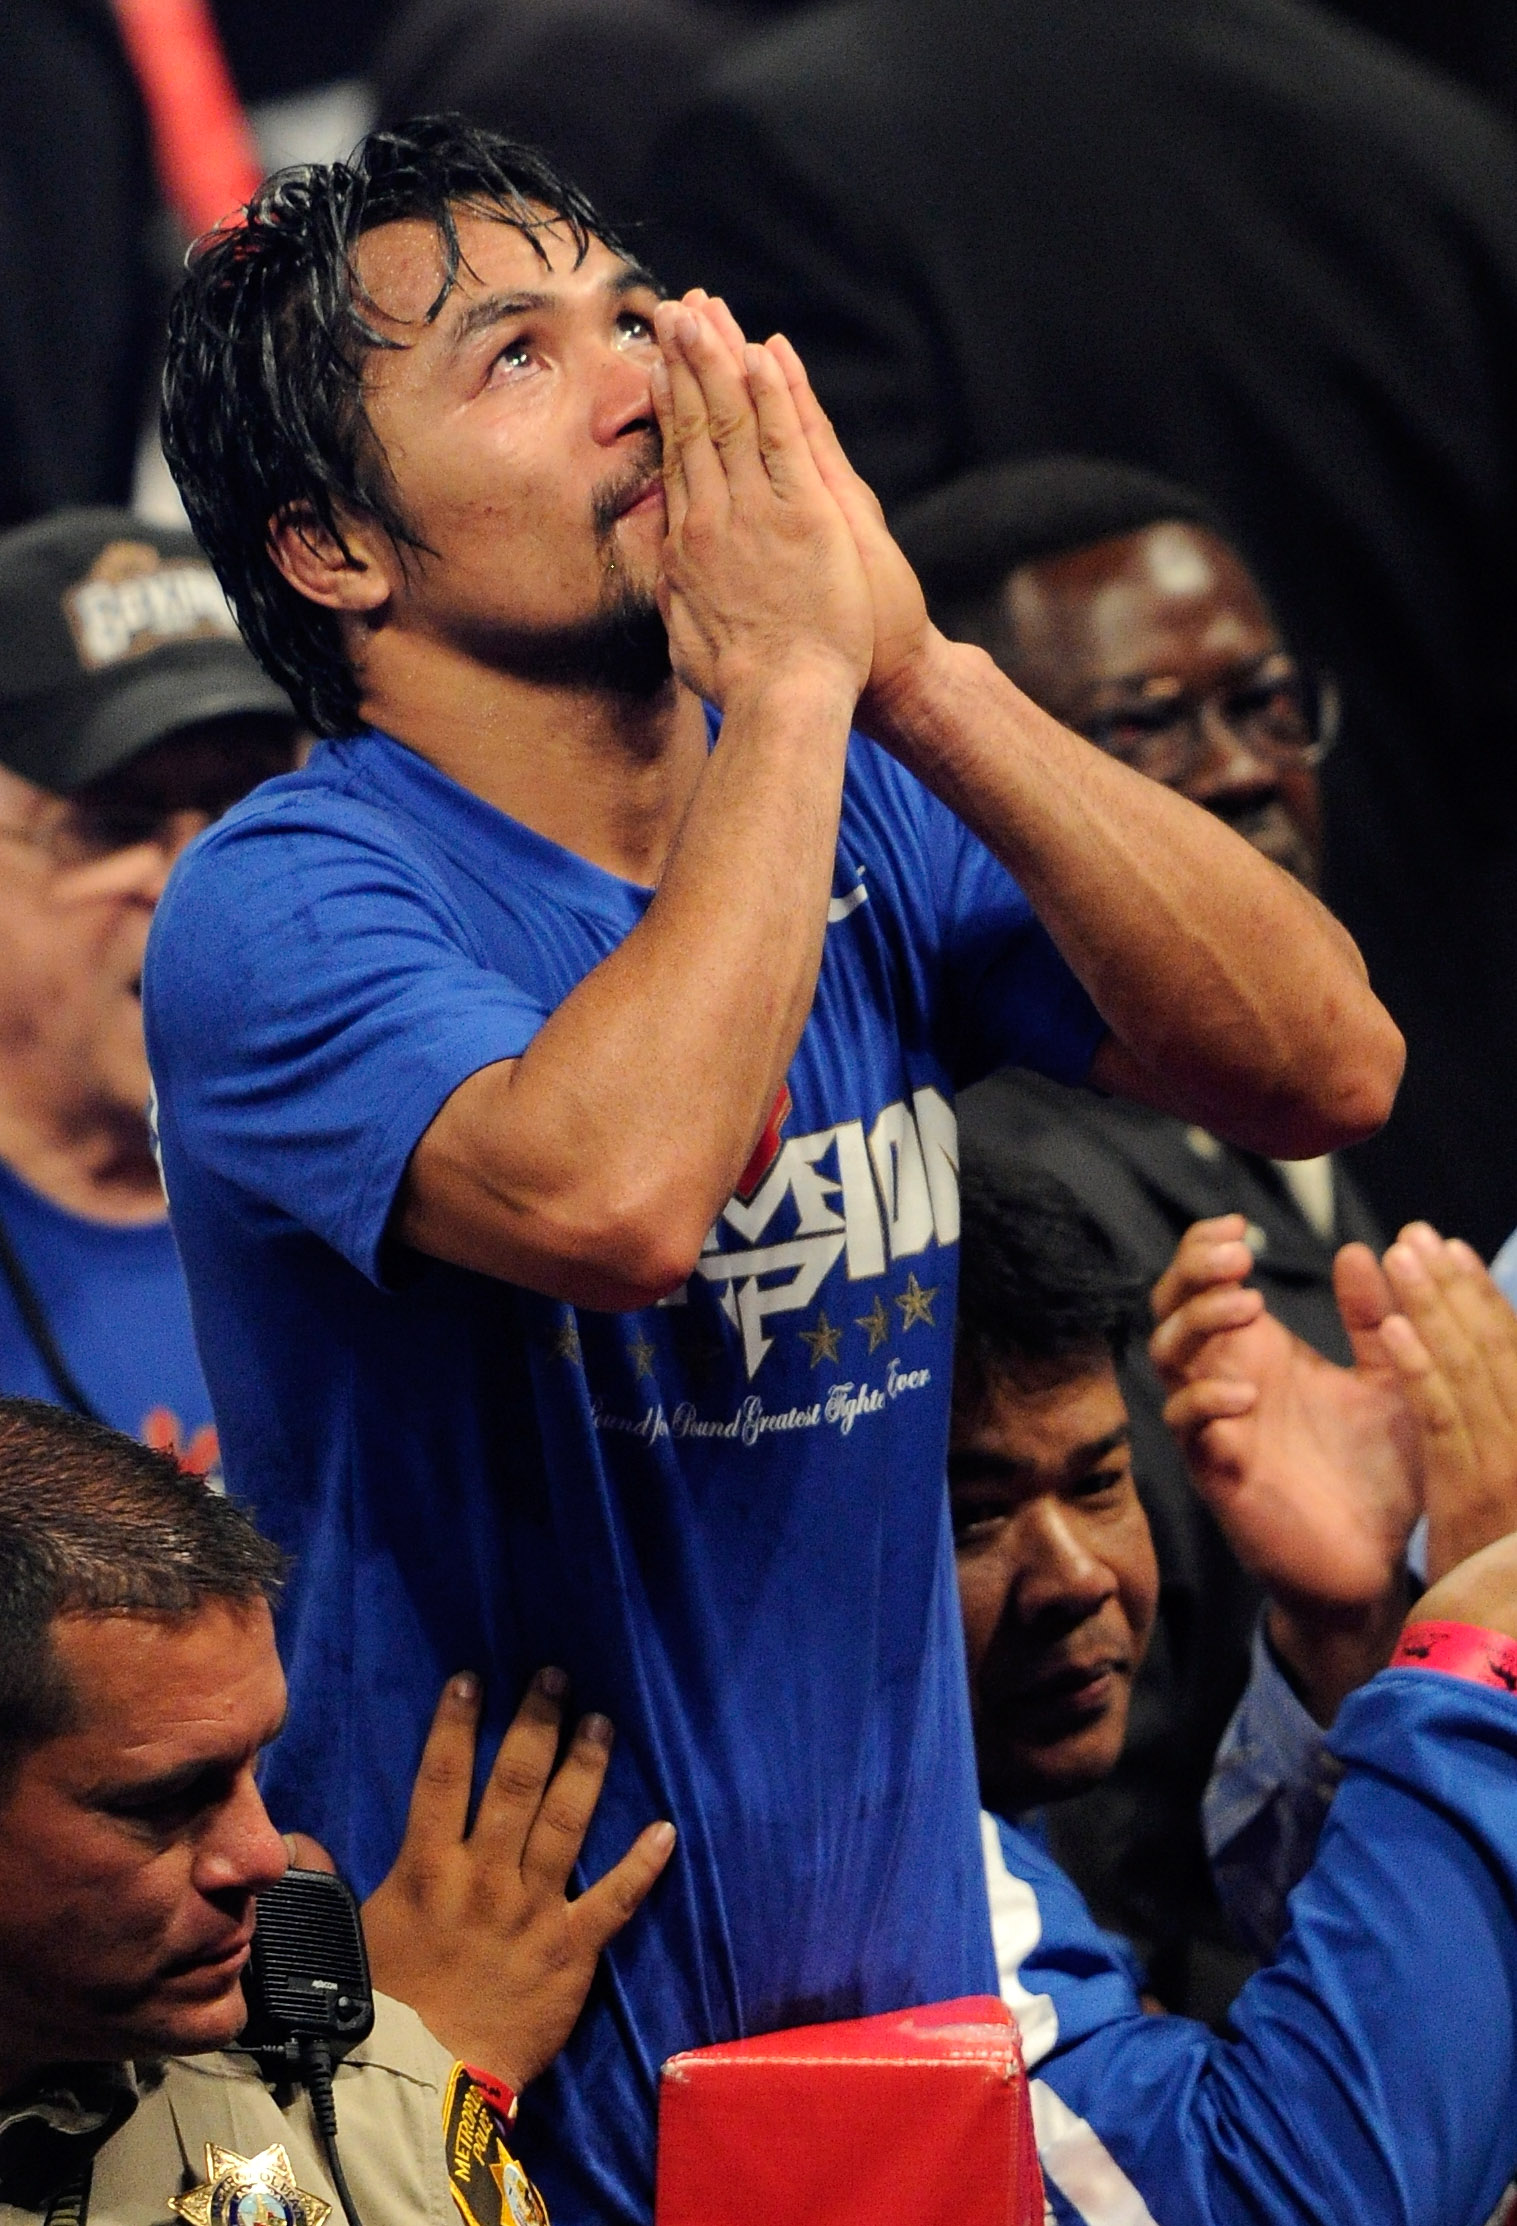 LAS VEGAS, NV - MAY 07:  Manny Pacquiao of the Philippines celebrates after his unanimous decision victory against Shane Mosley in the WBO welterweight title fight at MGM Grand Garden Arena on May 7, 2011 in Las Vegas, Nevada.  (Photo by Ethan Miller/Gett